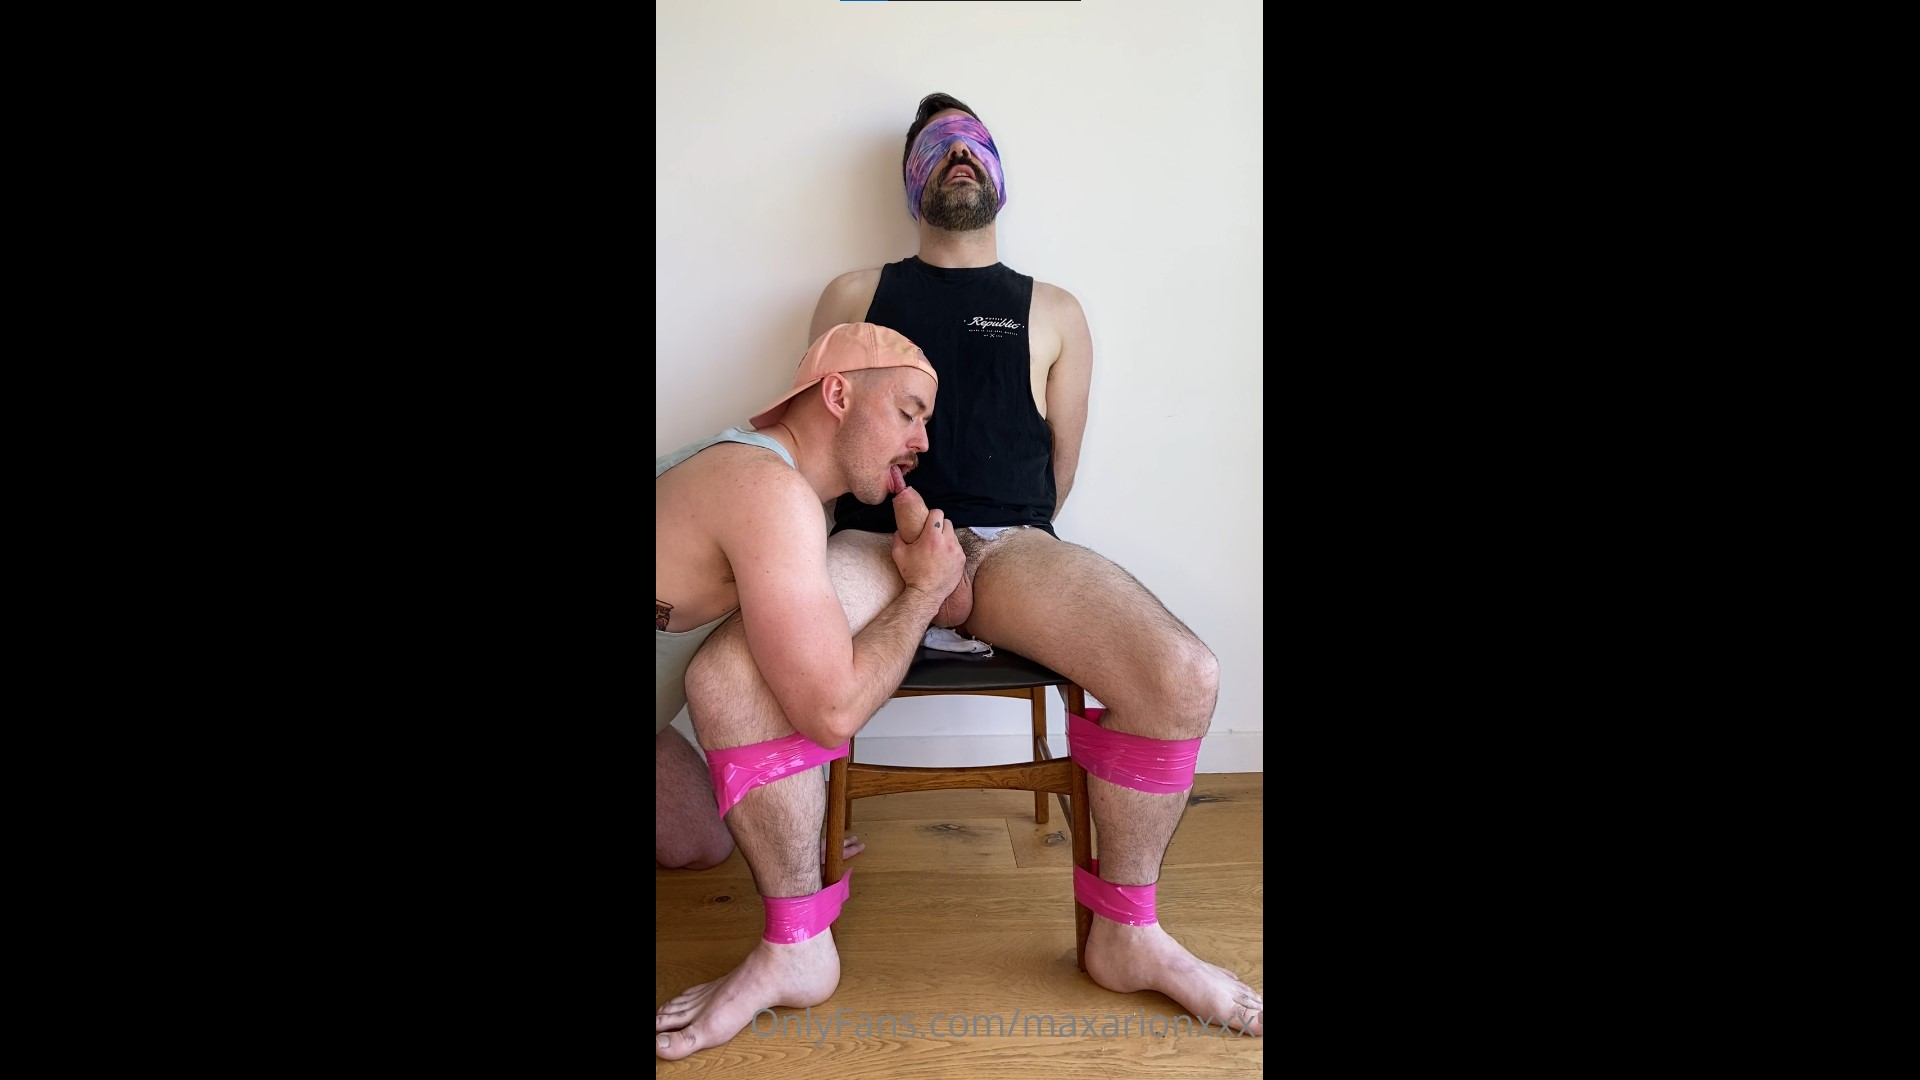 Handcuffed and blind folded while being sucked and jerked off - Max Arion